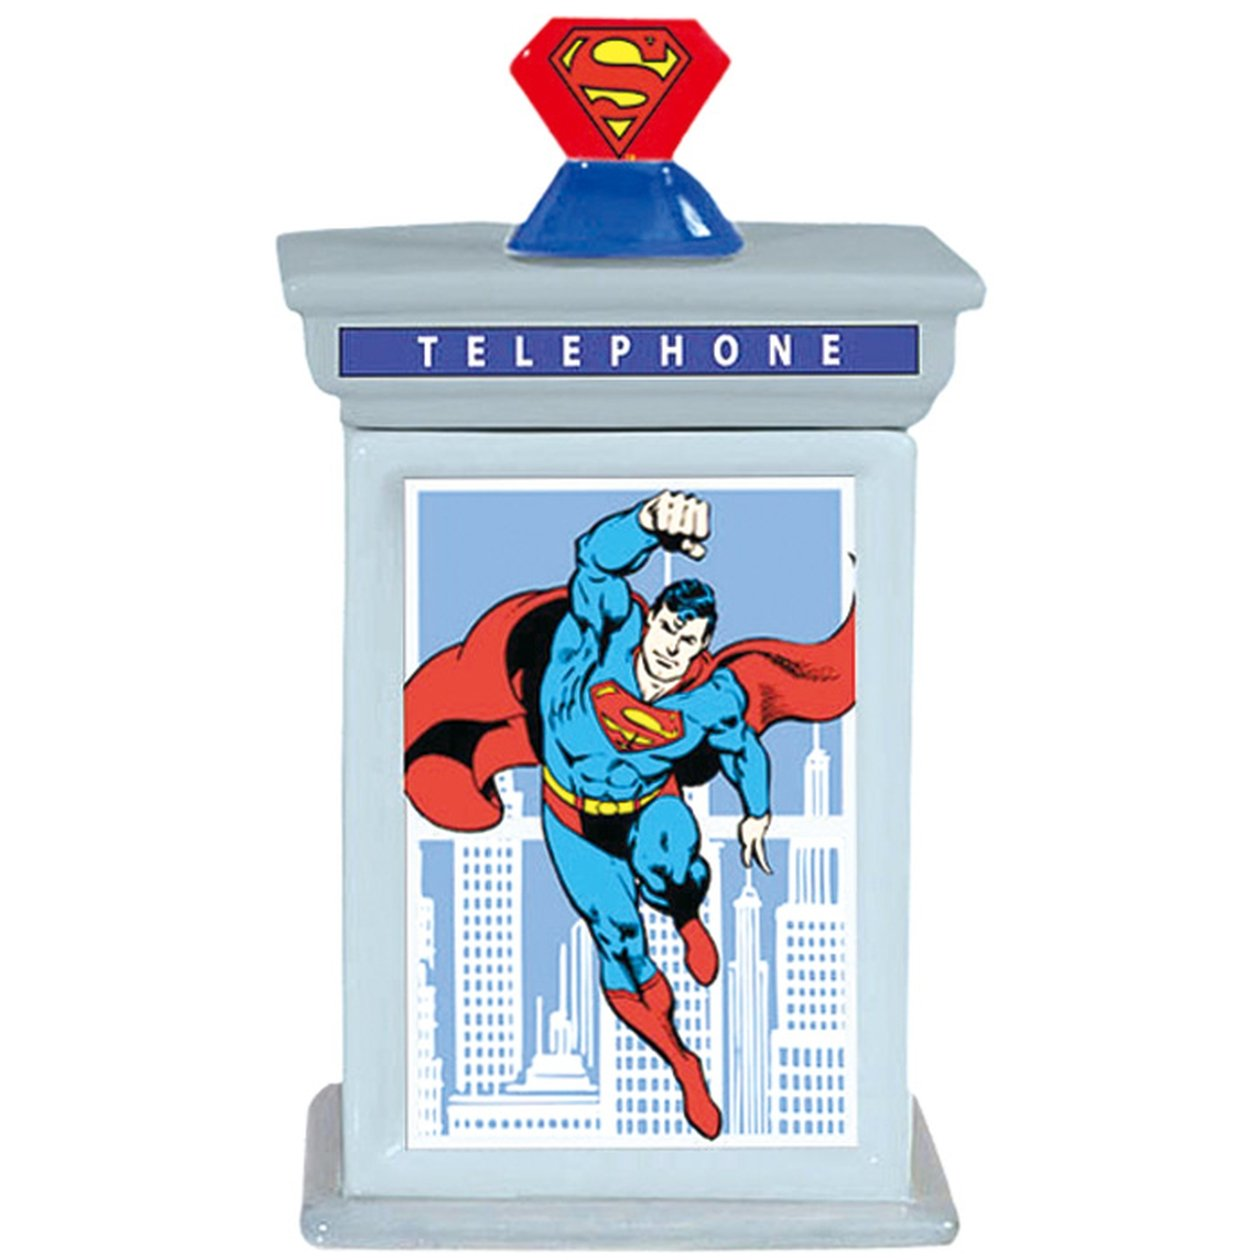 Cookie Jar - DC Comic - Superman - Phone Booth New Licensed Gifts Toys 25549 B00KIW2AB2